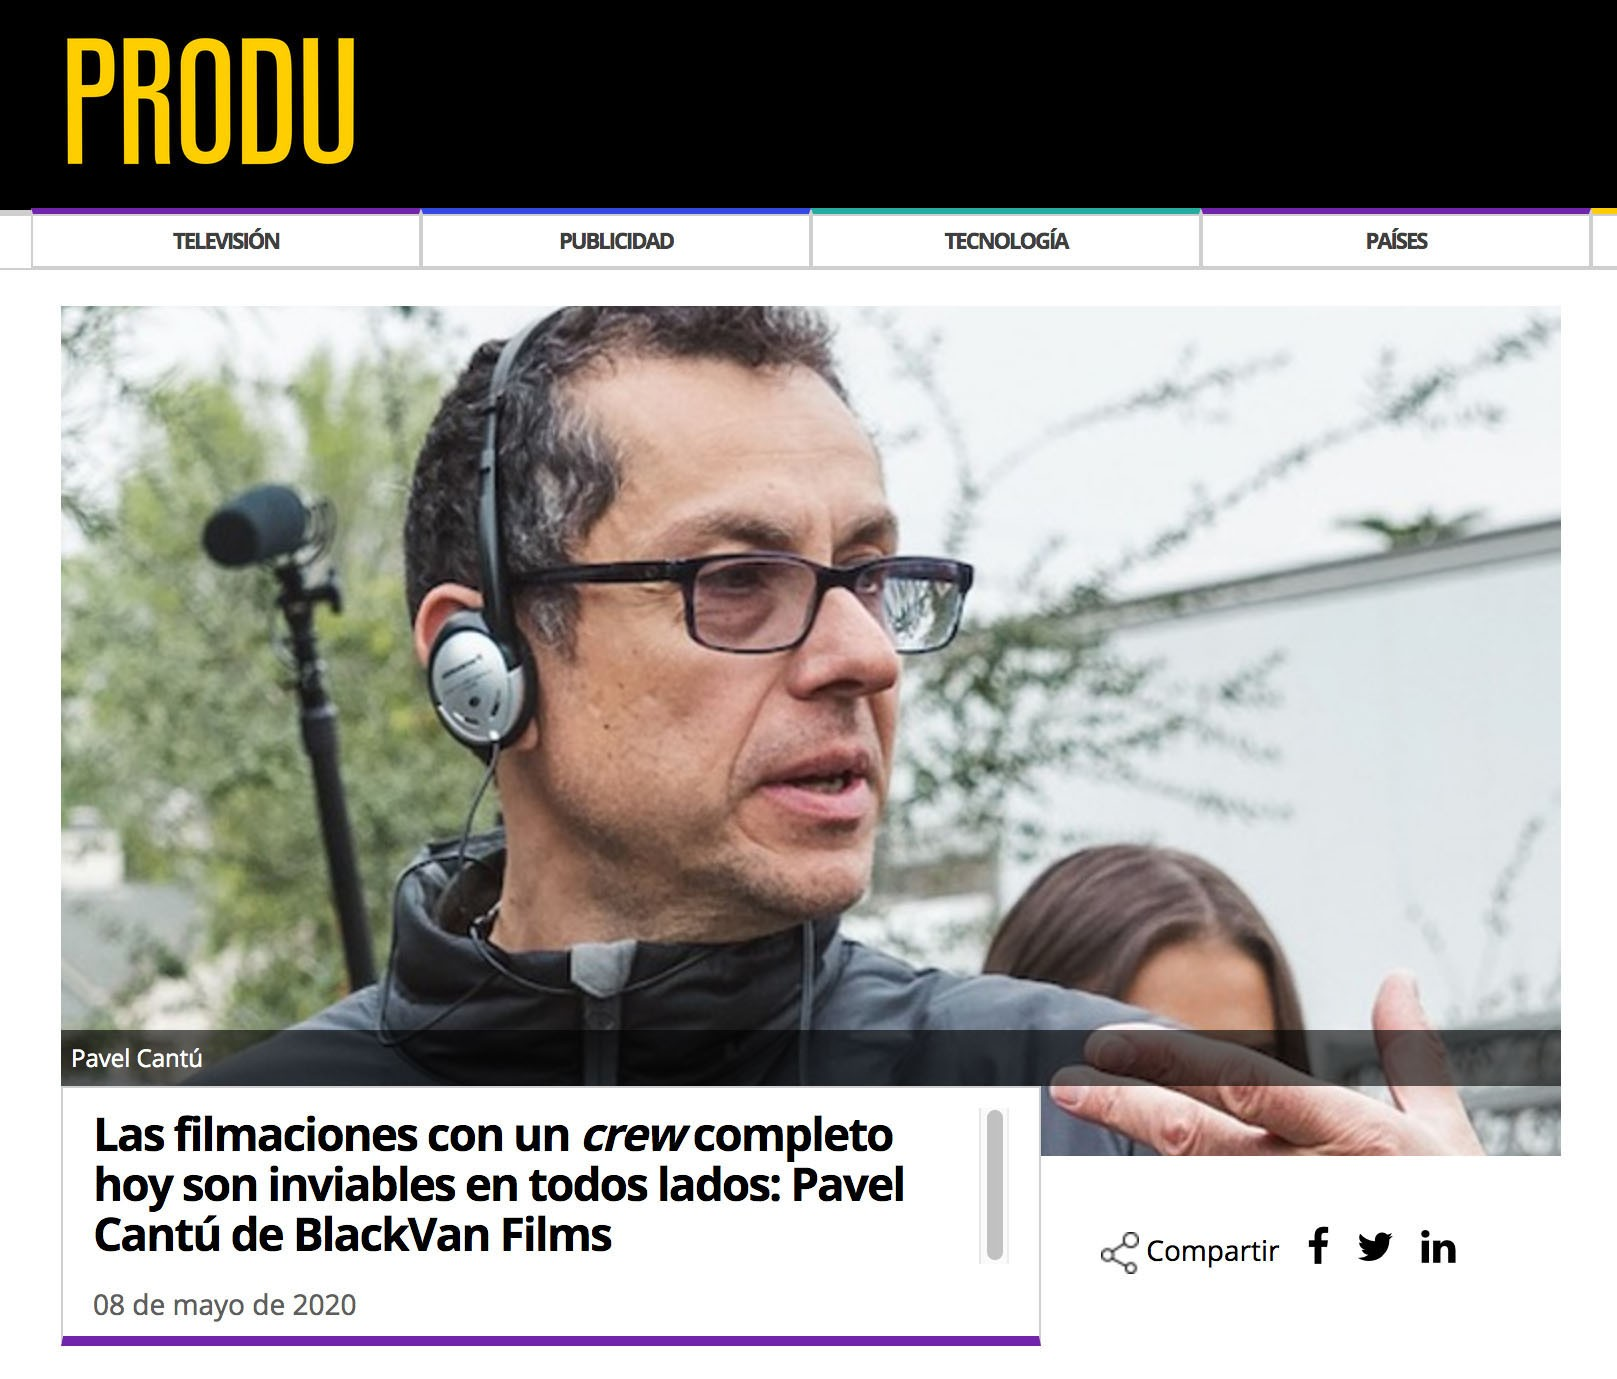 Filmmaker Pavel Cantú talks to Produ.com about the film industry in the times of Covid-19.